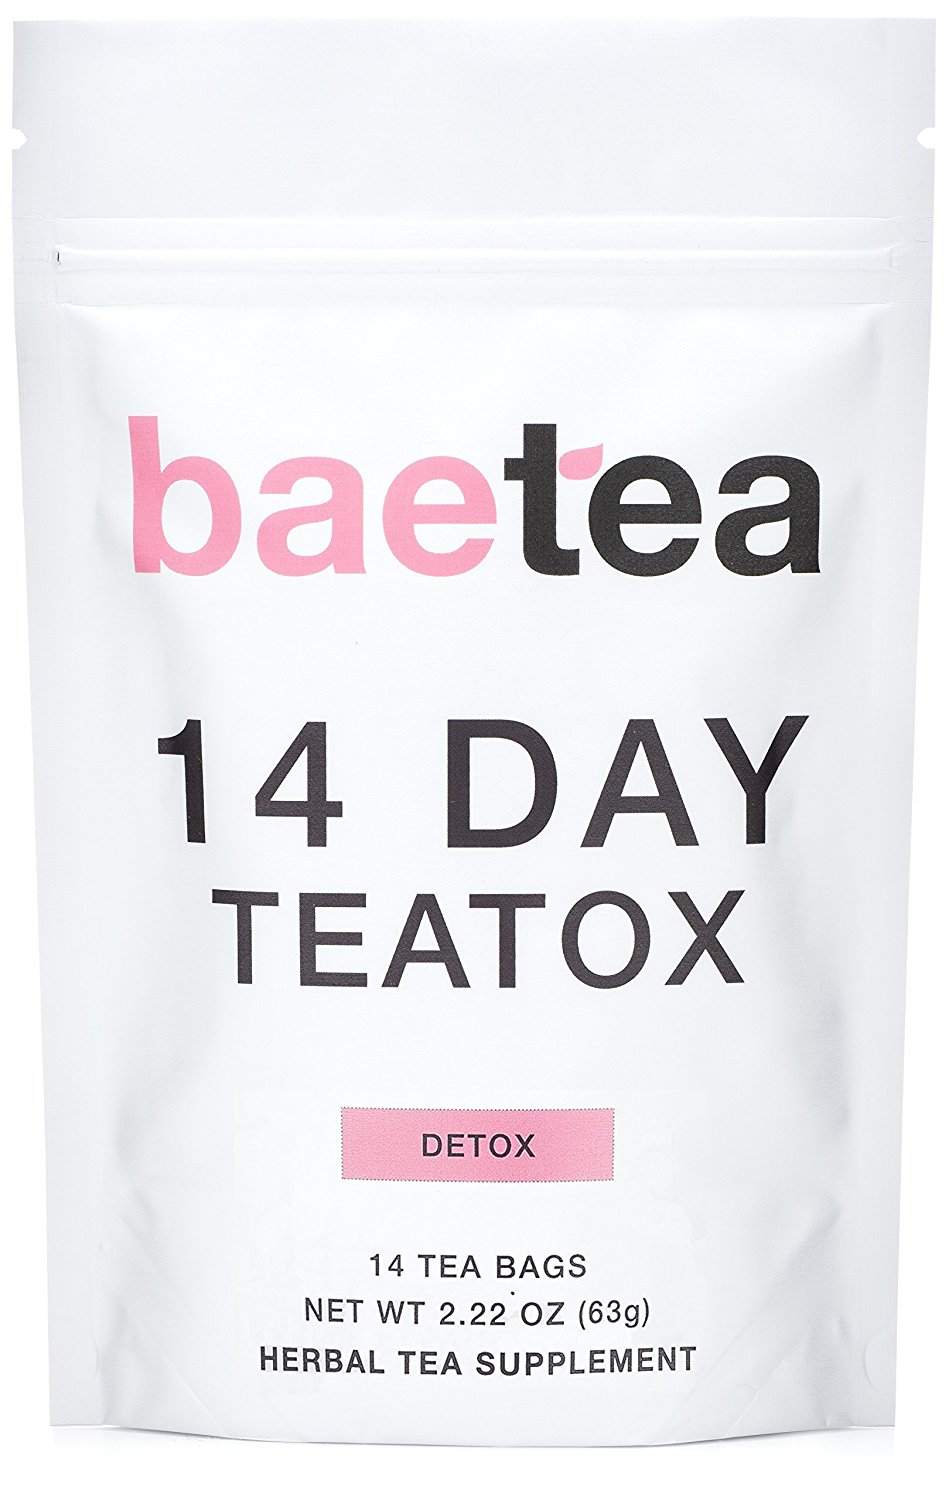 Detox Tea to Lose Weight - Baetea 14 Day Teatox Detox Herbal Tea Supplement